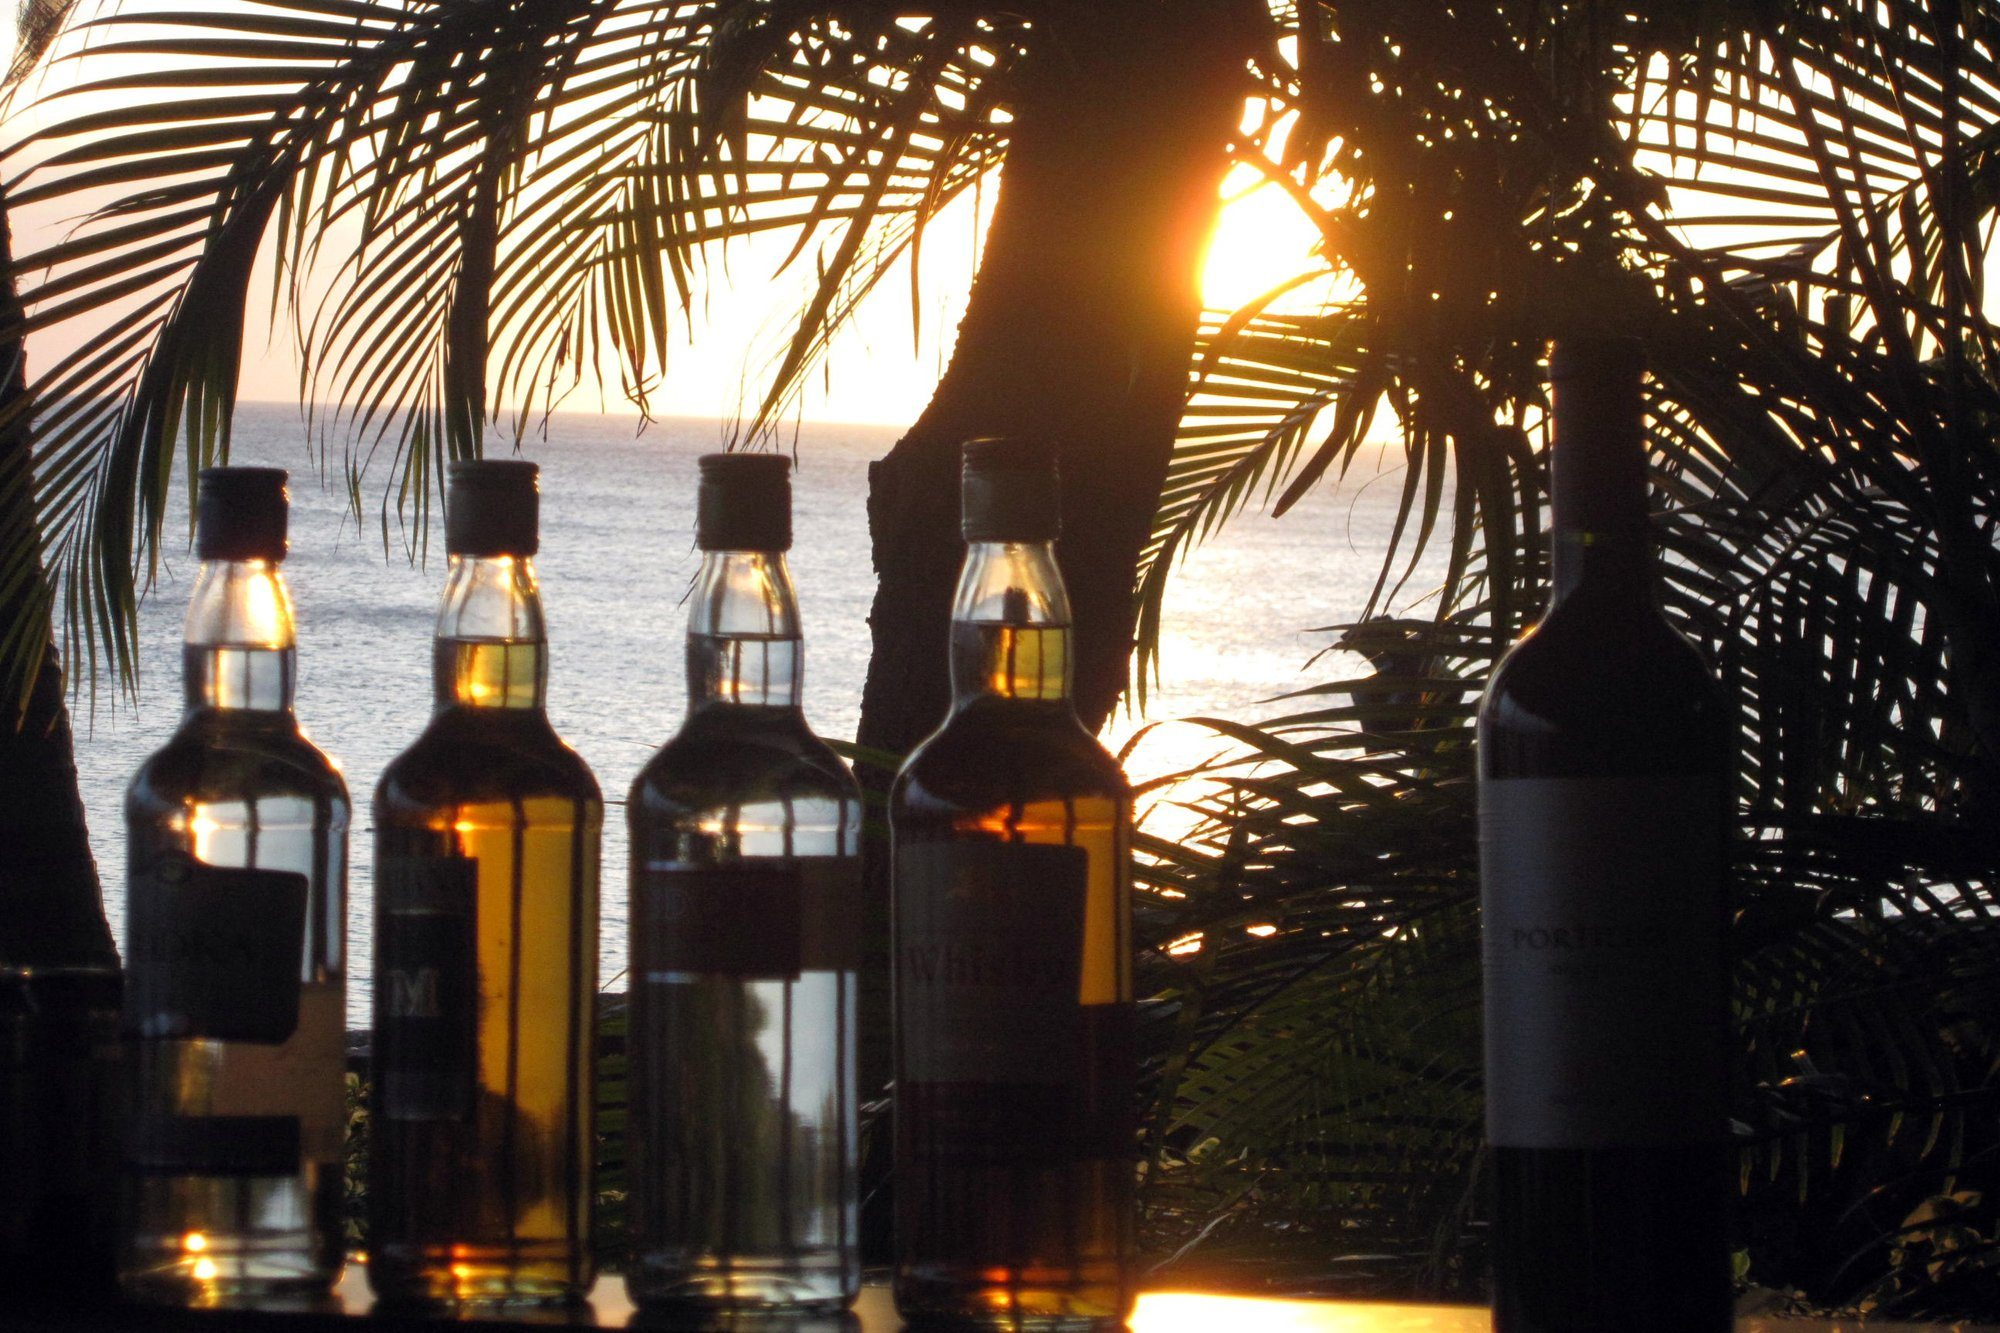 8 Bars to Check Out in Maenam